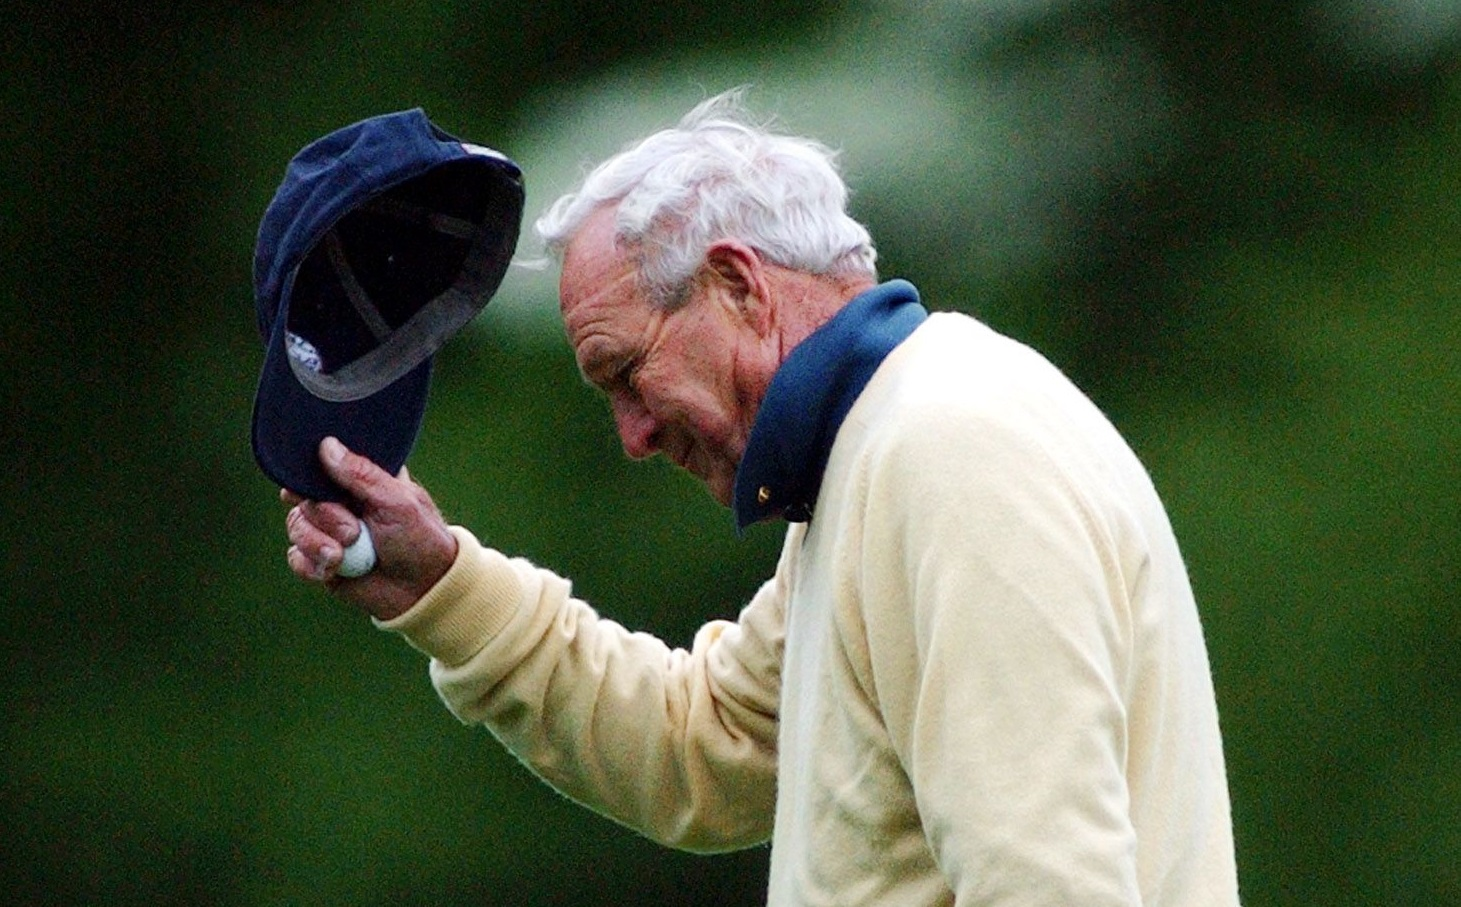 Arnold Palmer tips his hat to the gallery as he walks on the 12th hole during first round play of the 2003 Masters. (David Martin/Associated Press)